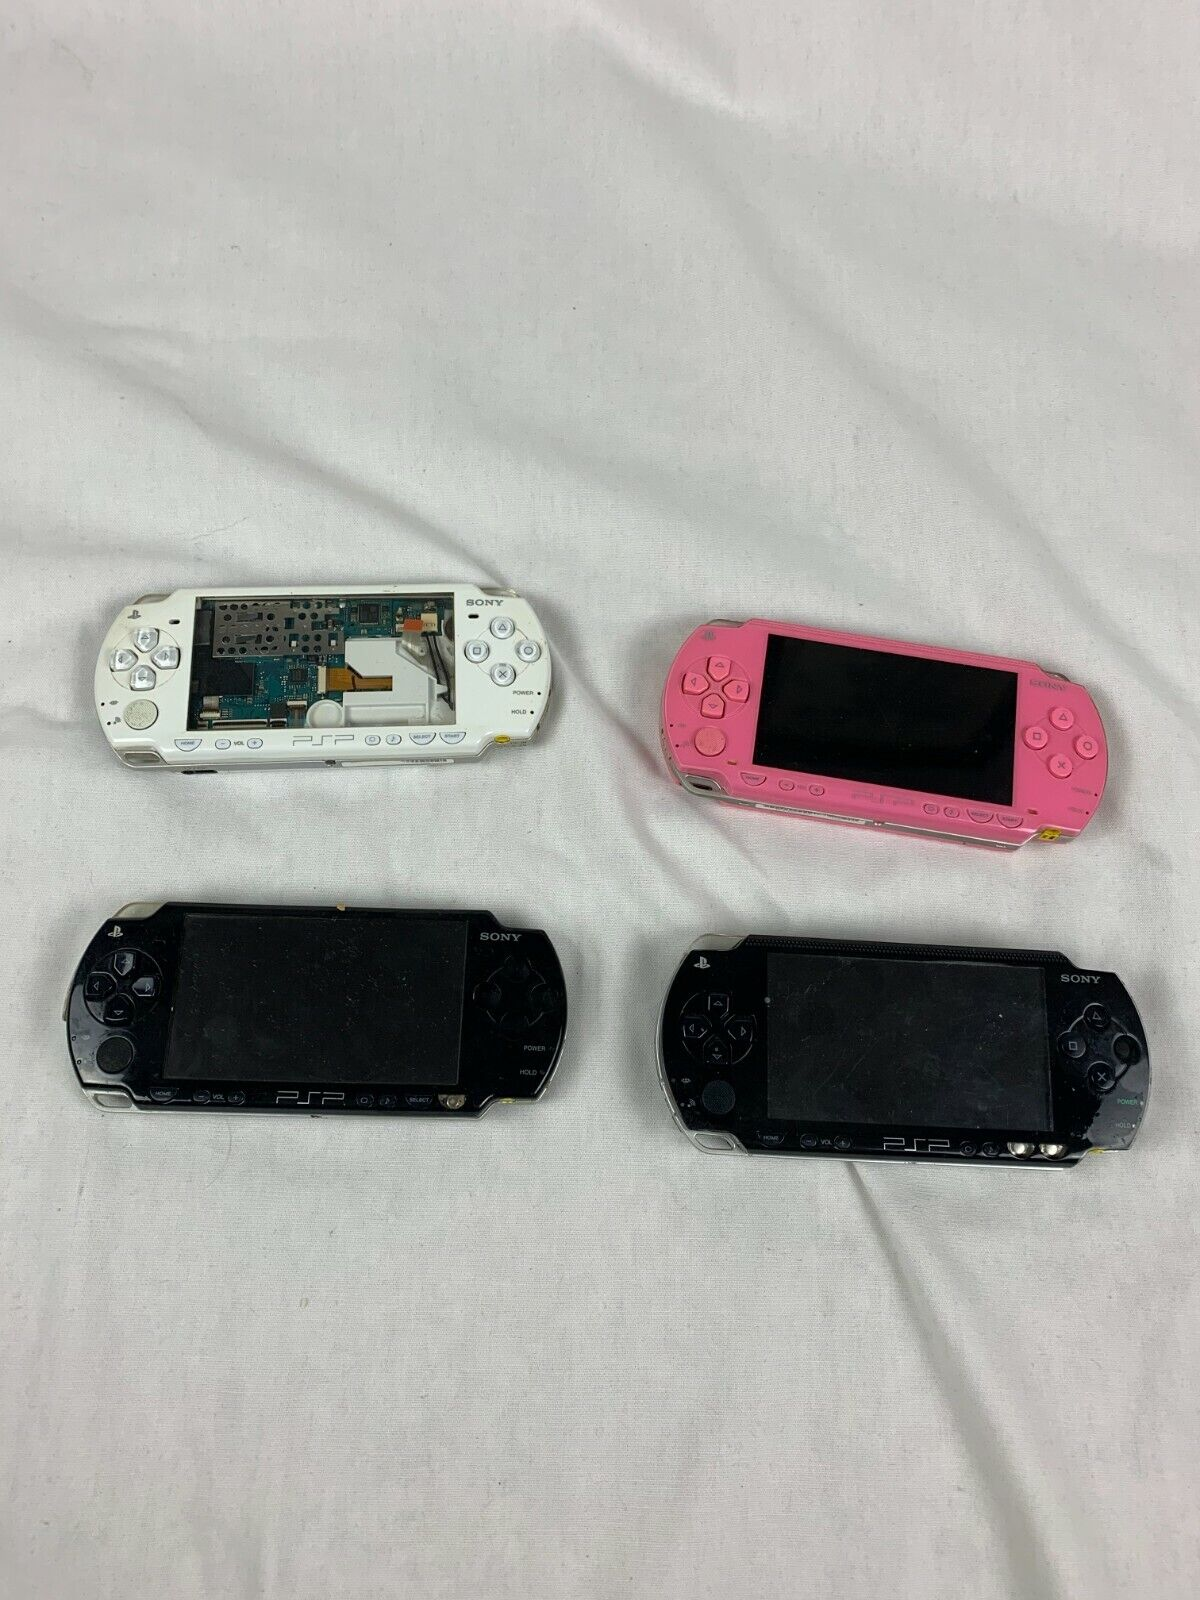 LOT OF 4 PLAYSTATION PORATBLE PSP UNITS MODELS 1000, 1001 2001 FOR PARTS AS IS - $50.00